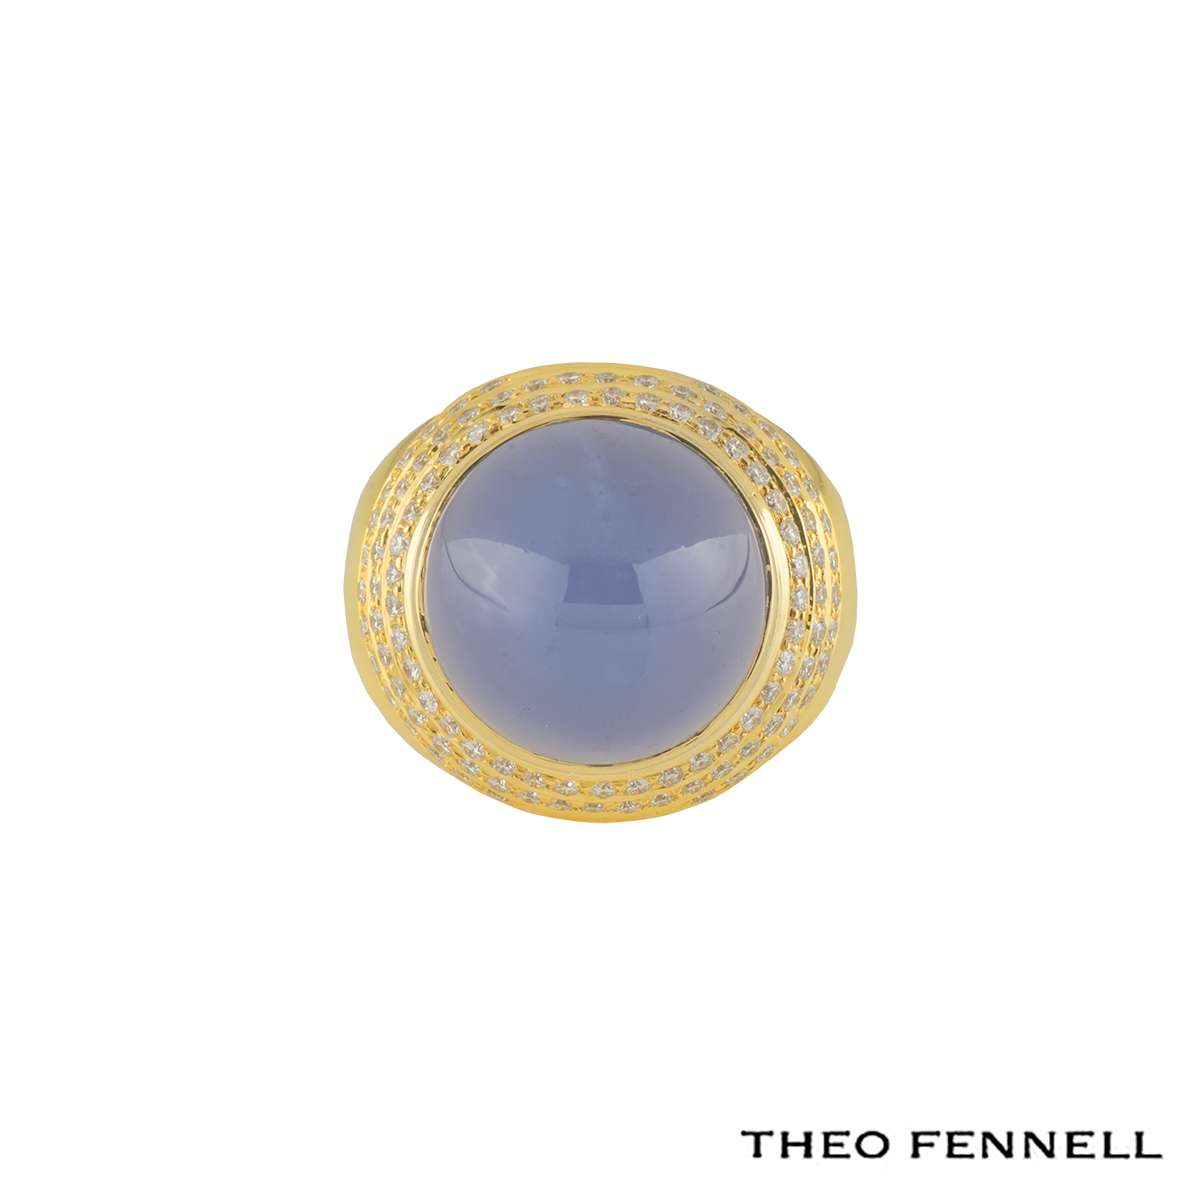 Theo Fennell Diamond and Moonstone Dress Ring